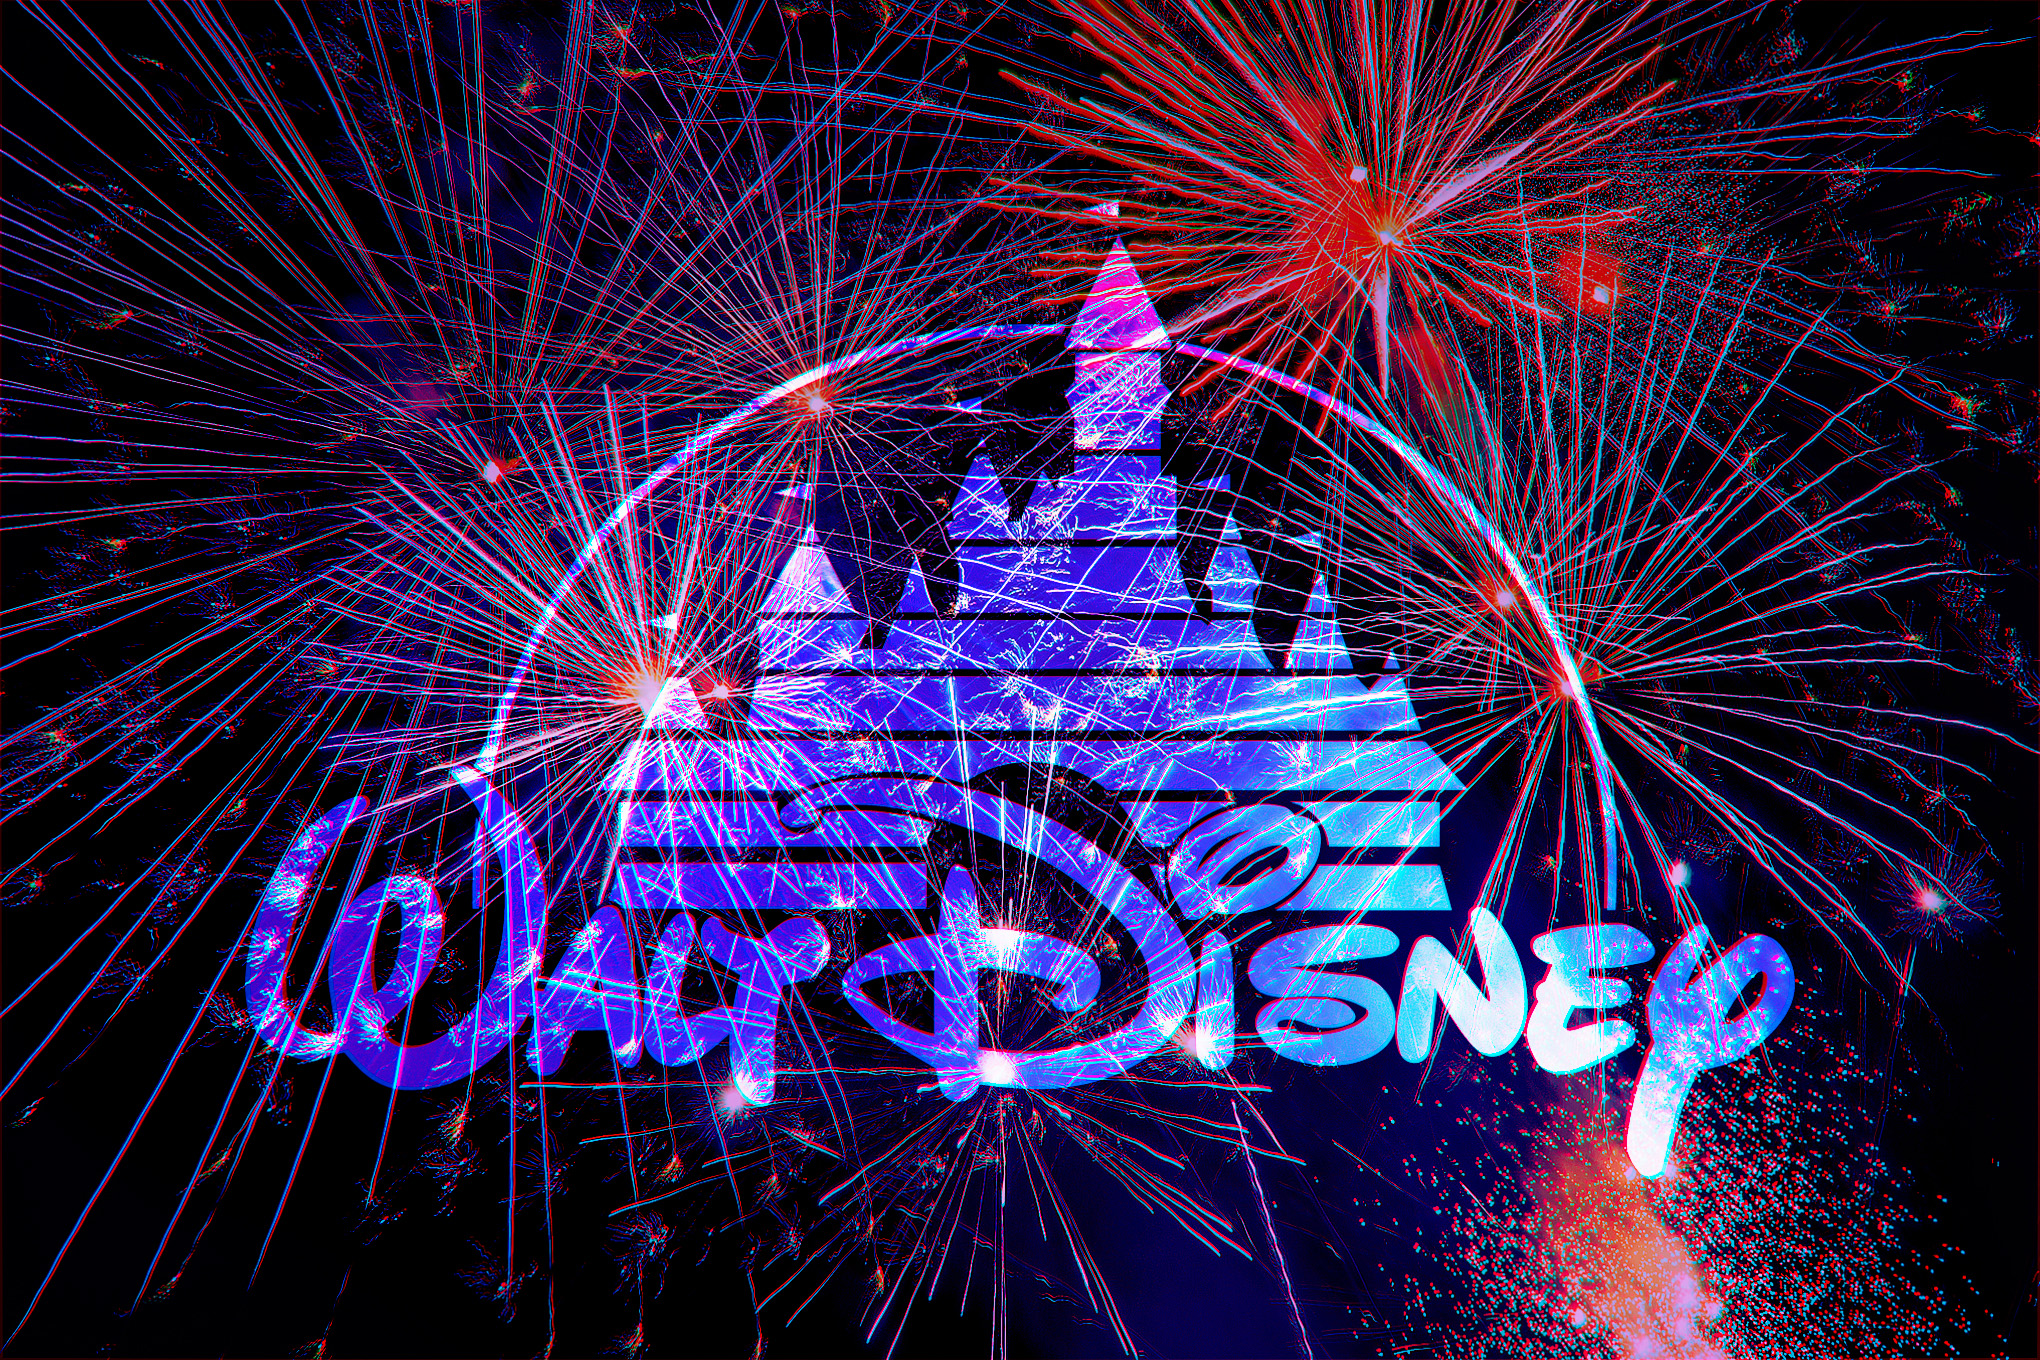 Illustration featuring Disney logo overwhelmed by fireworks